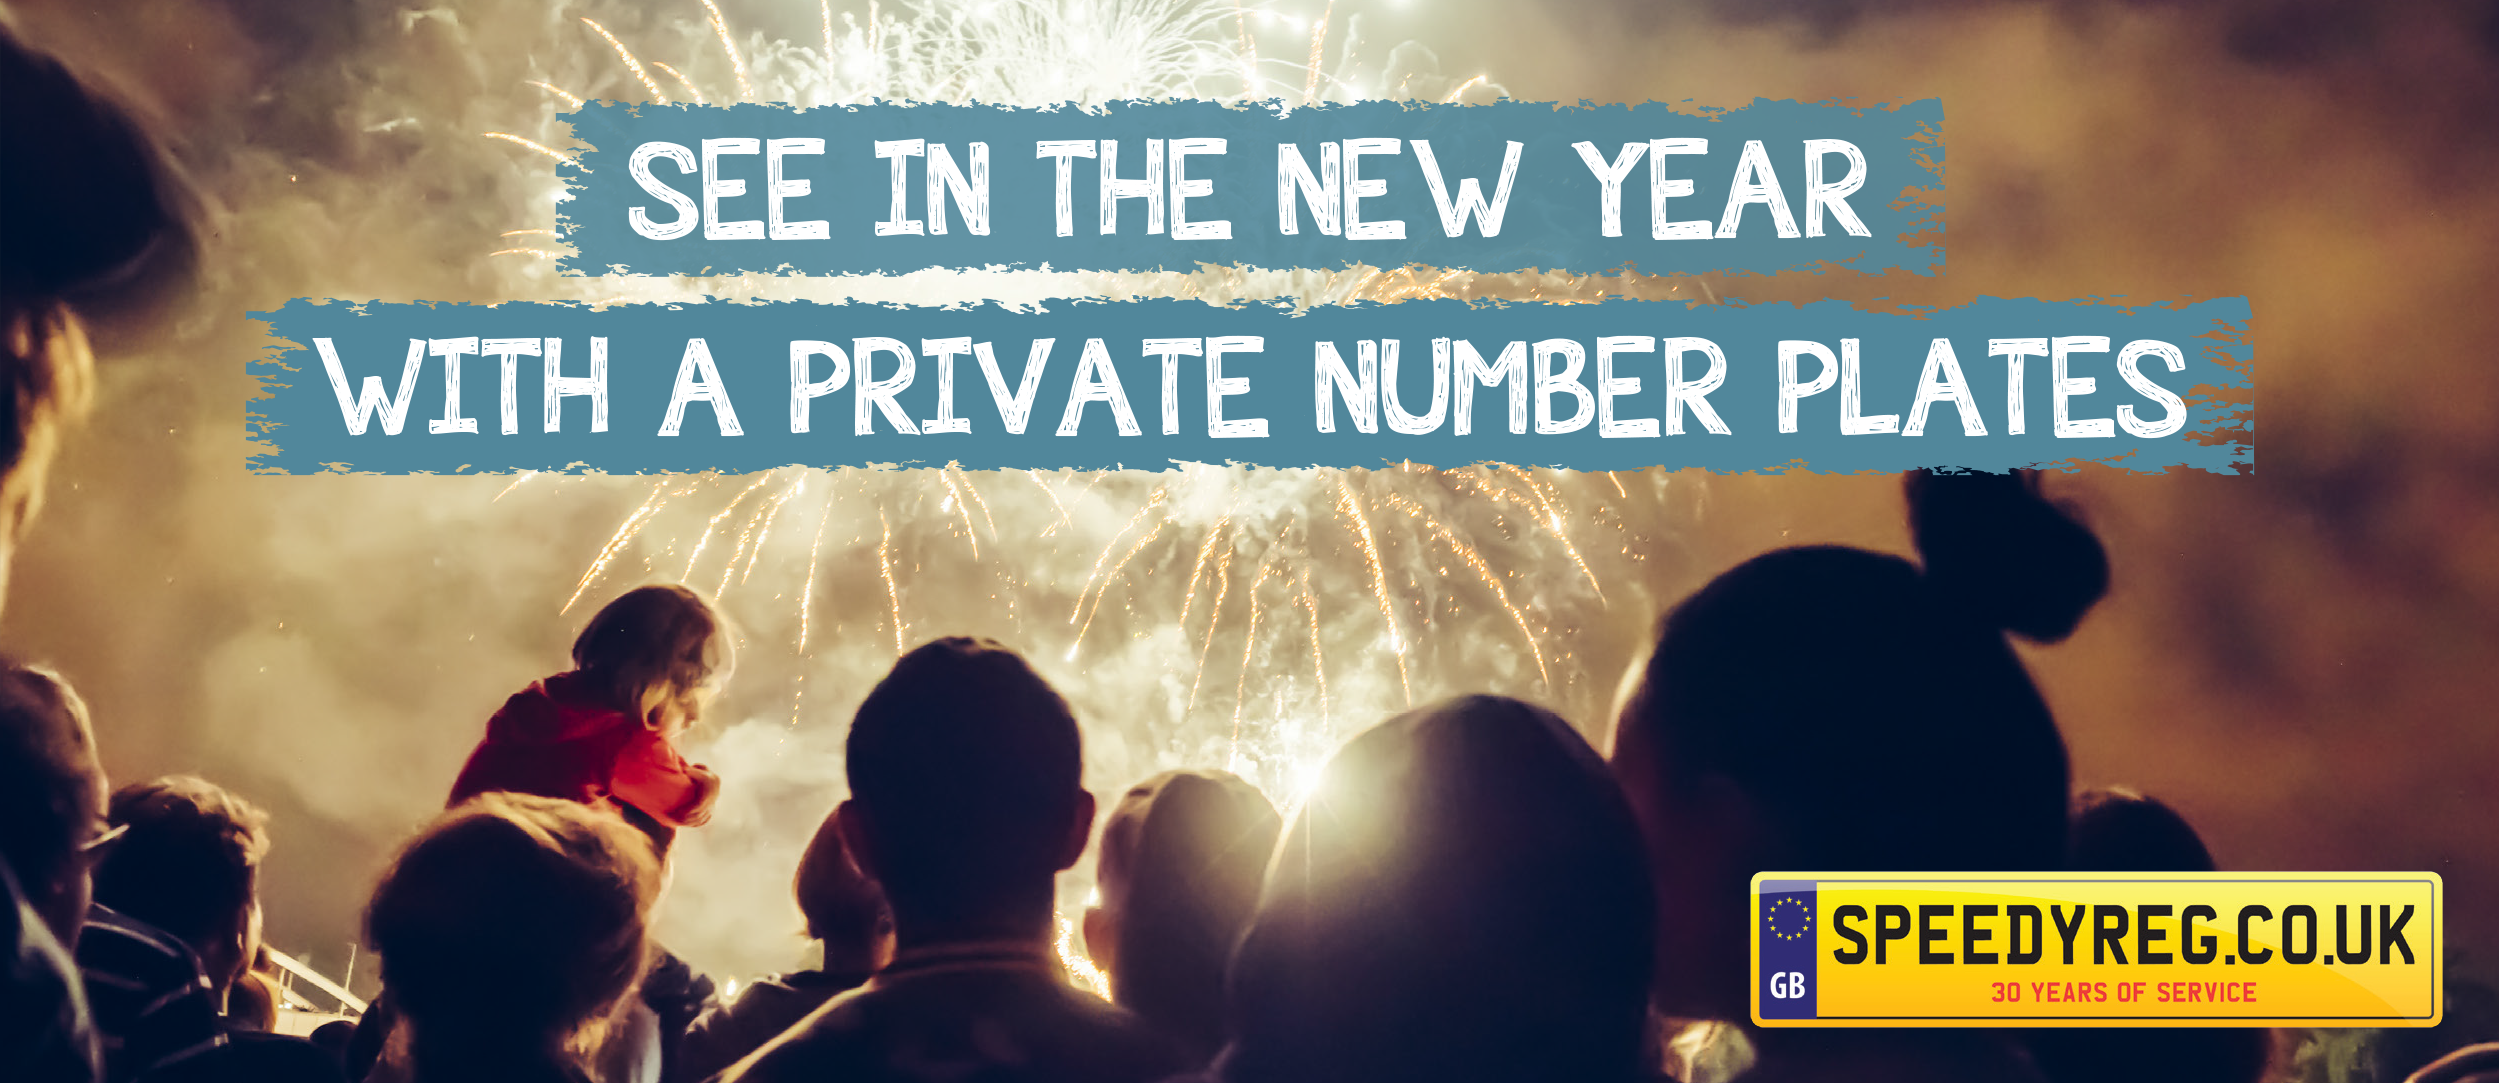 12-see-in-the-new-year-with-a-private-number-plates